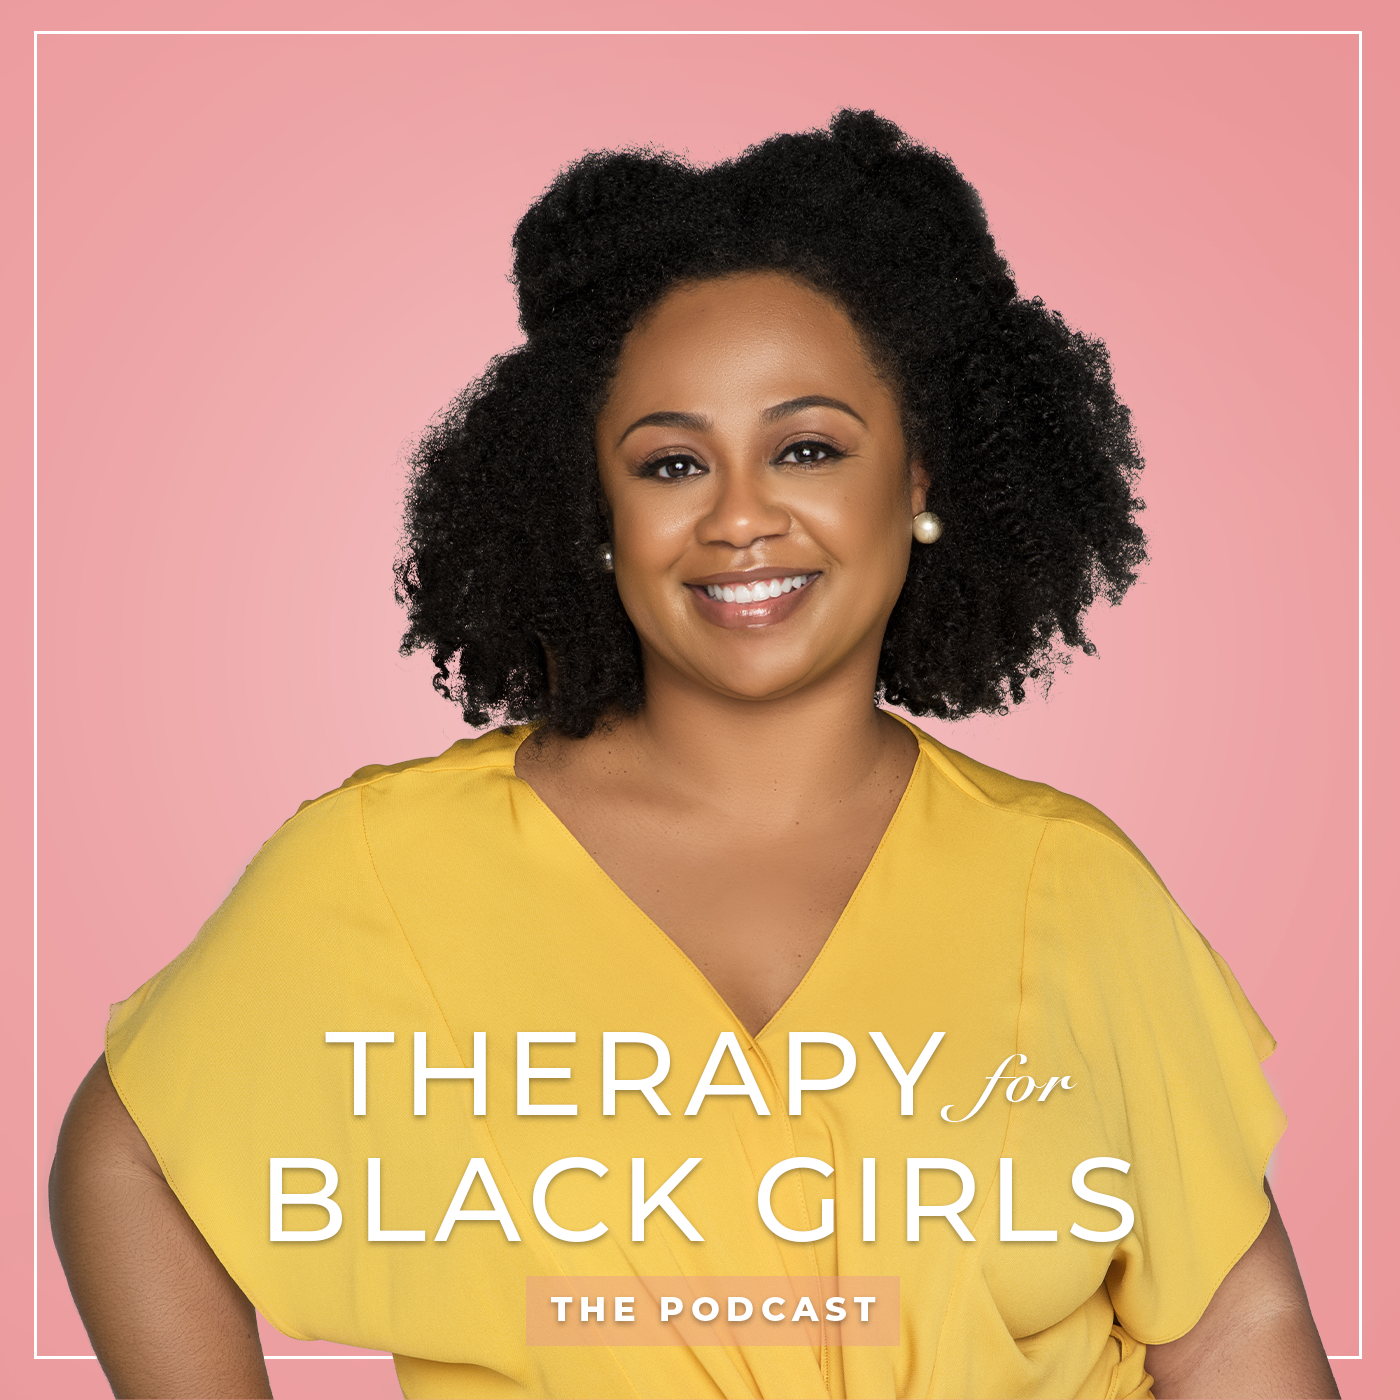 A picture of Therapy for Black Girls podcast host, Dr. Joy Harden Bradford.